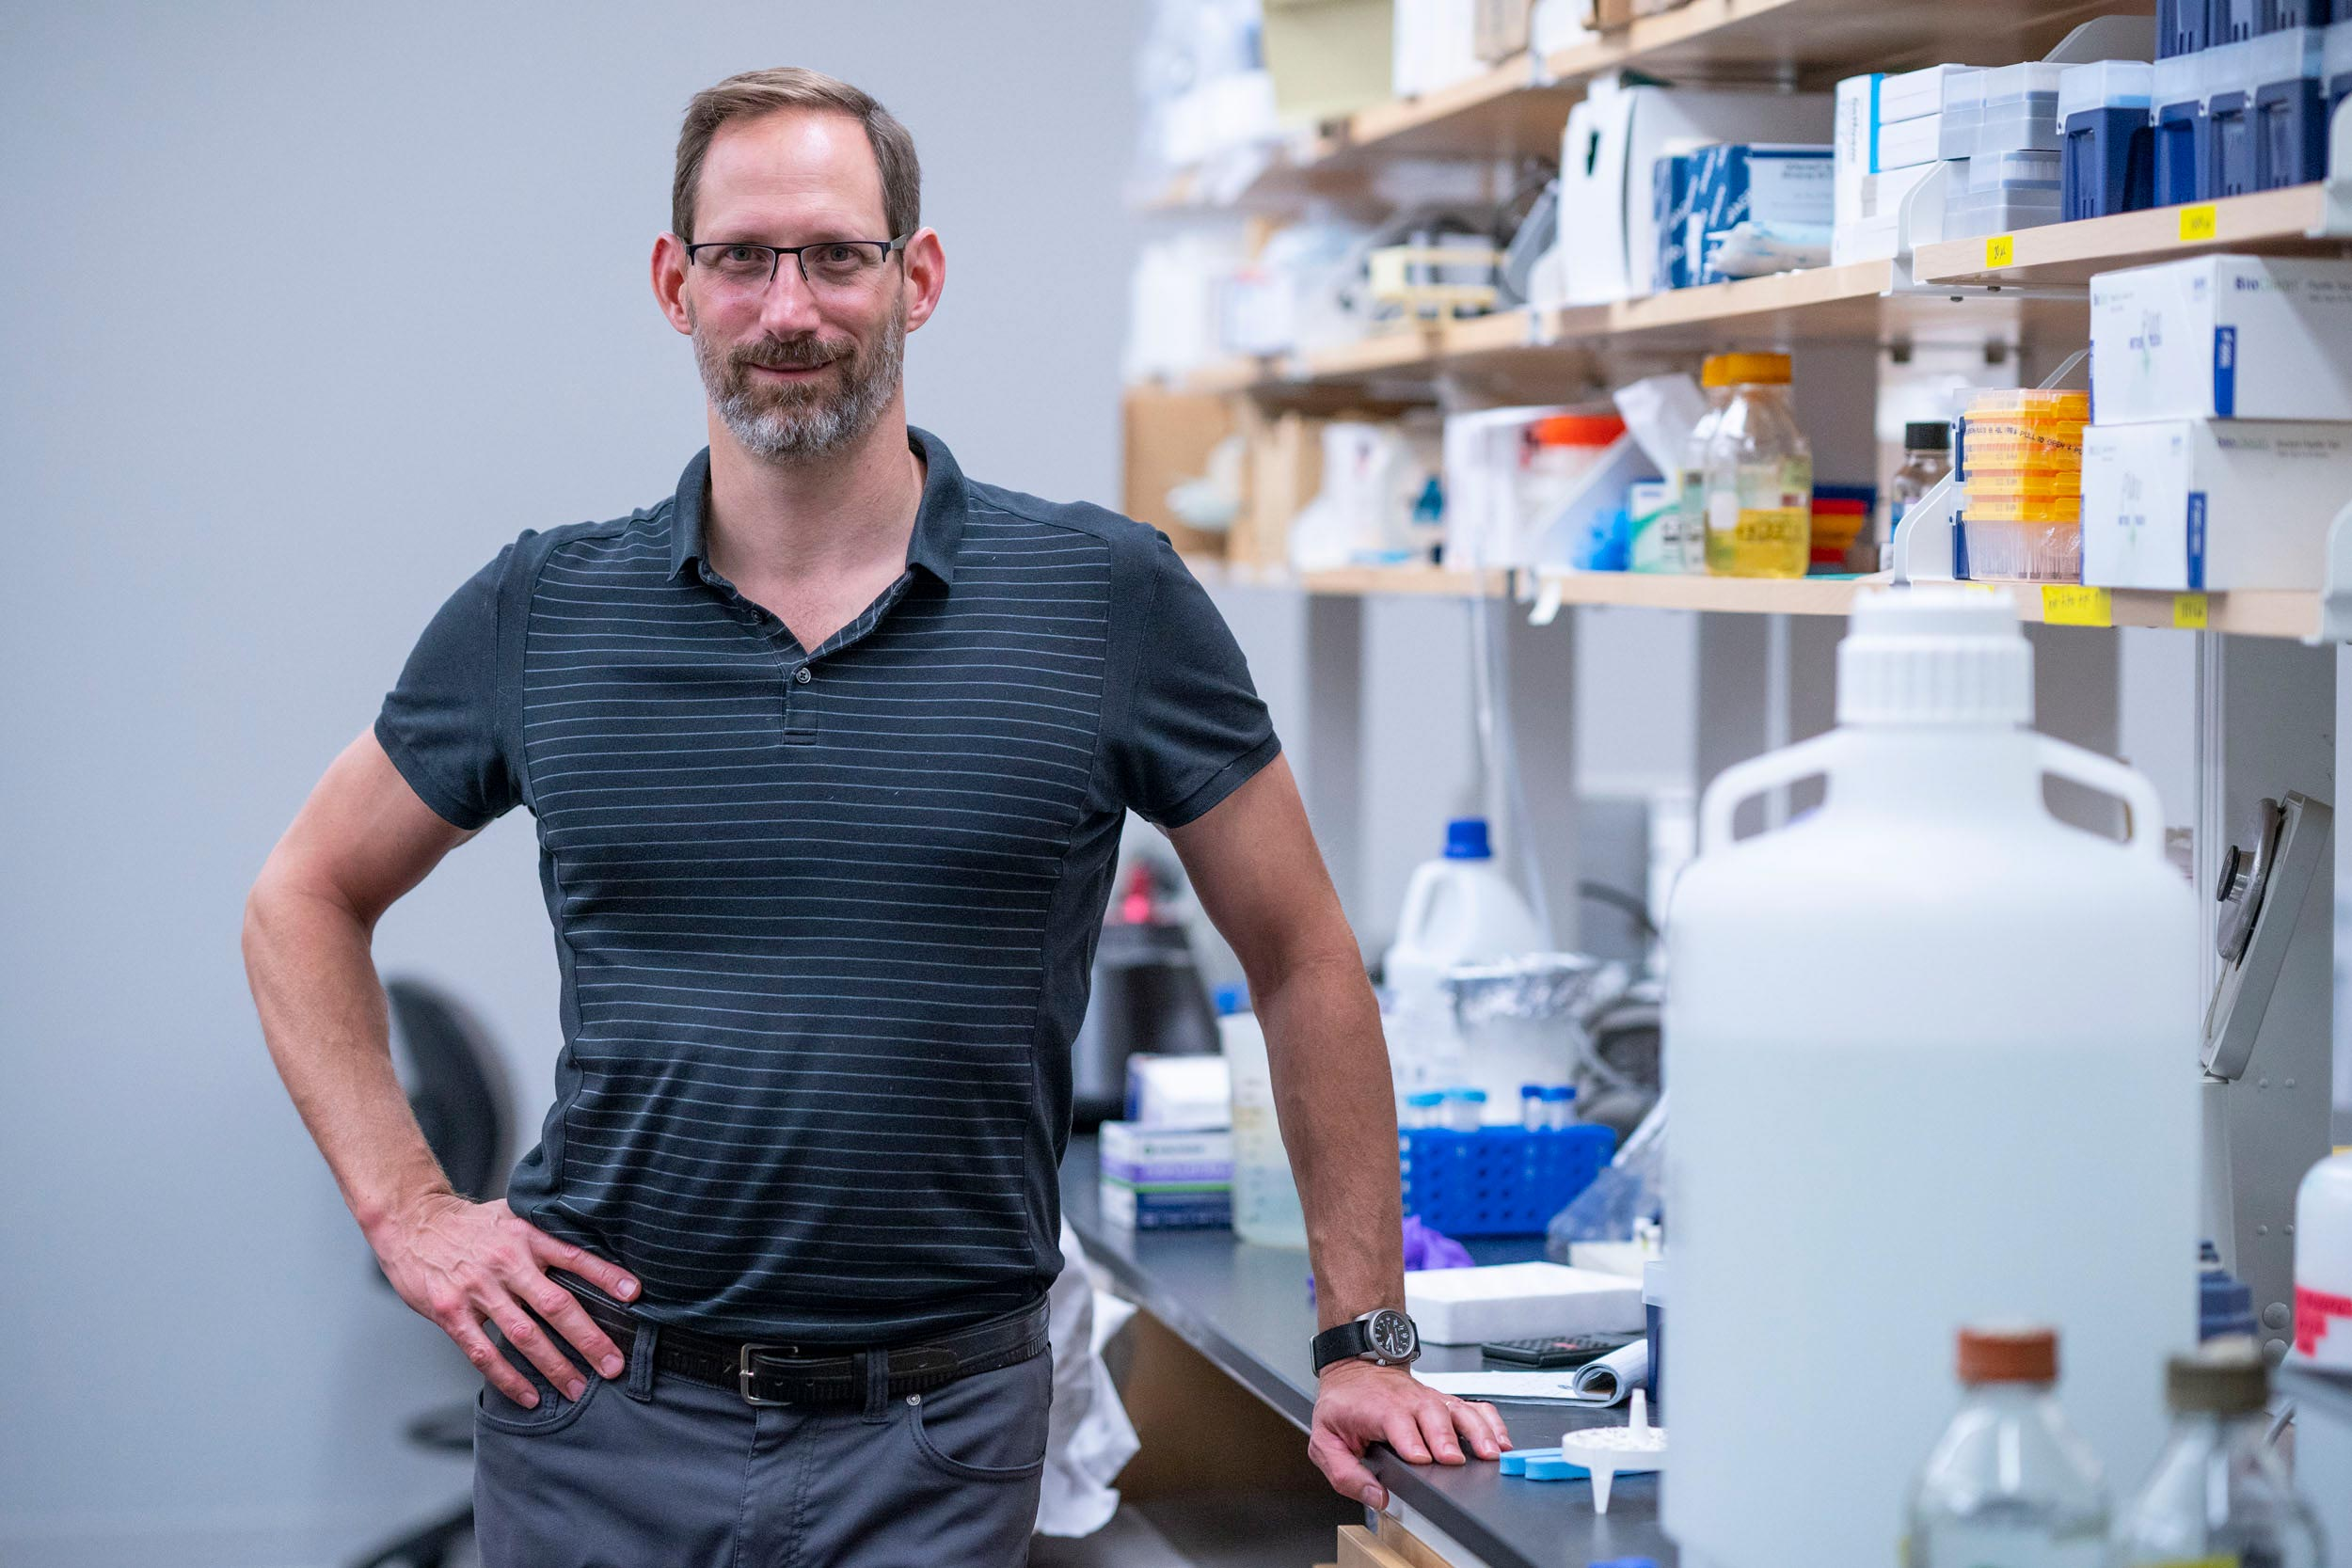 Dan Gioeli is a senior researcher in UVA's Department of Microbiology, Immunology and Cancer Biology and the UVA Cancer Center.